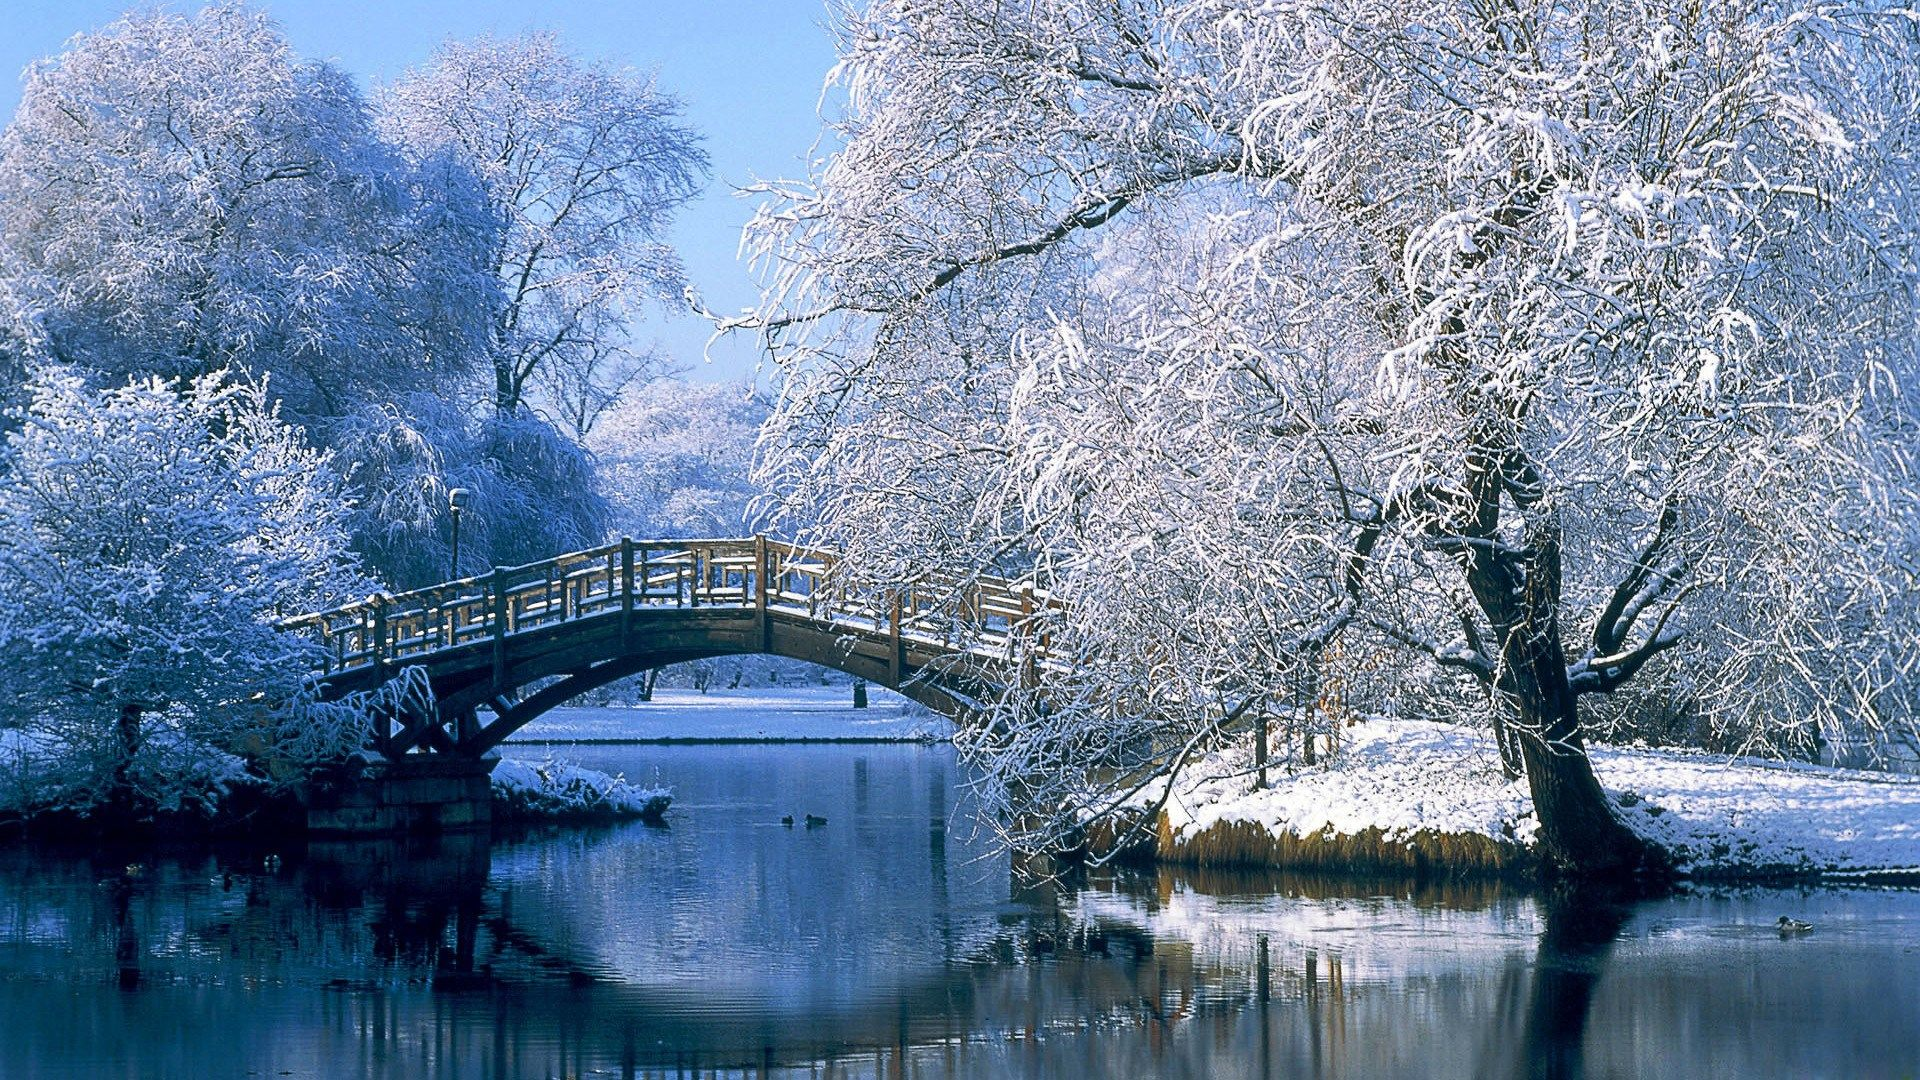 desktop backgrounds for computer full hd 1080p Winter